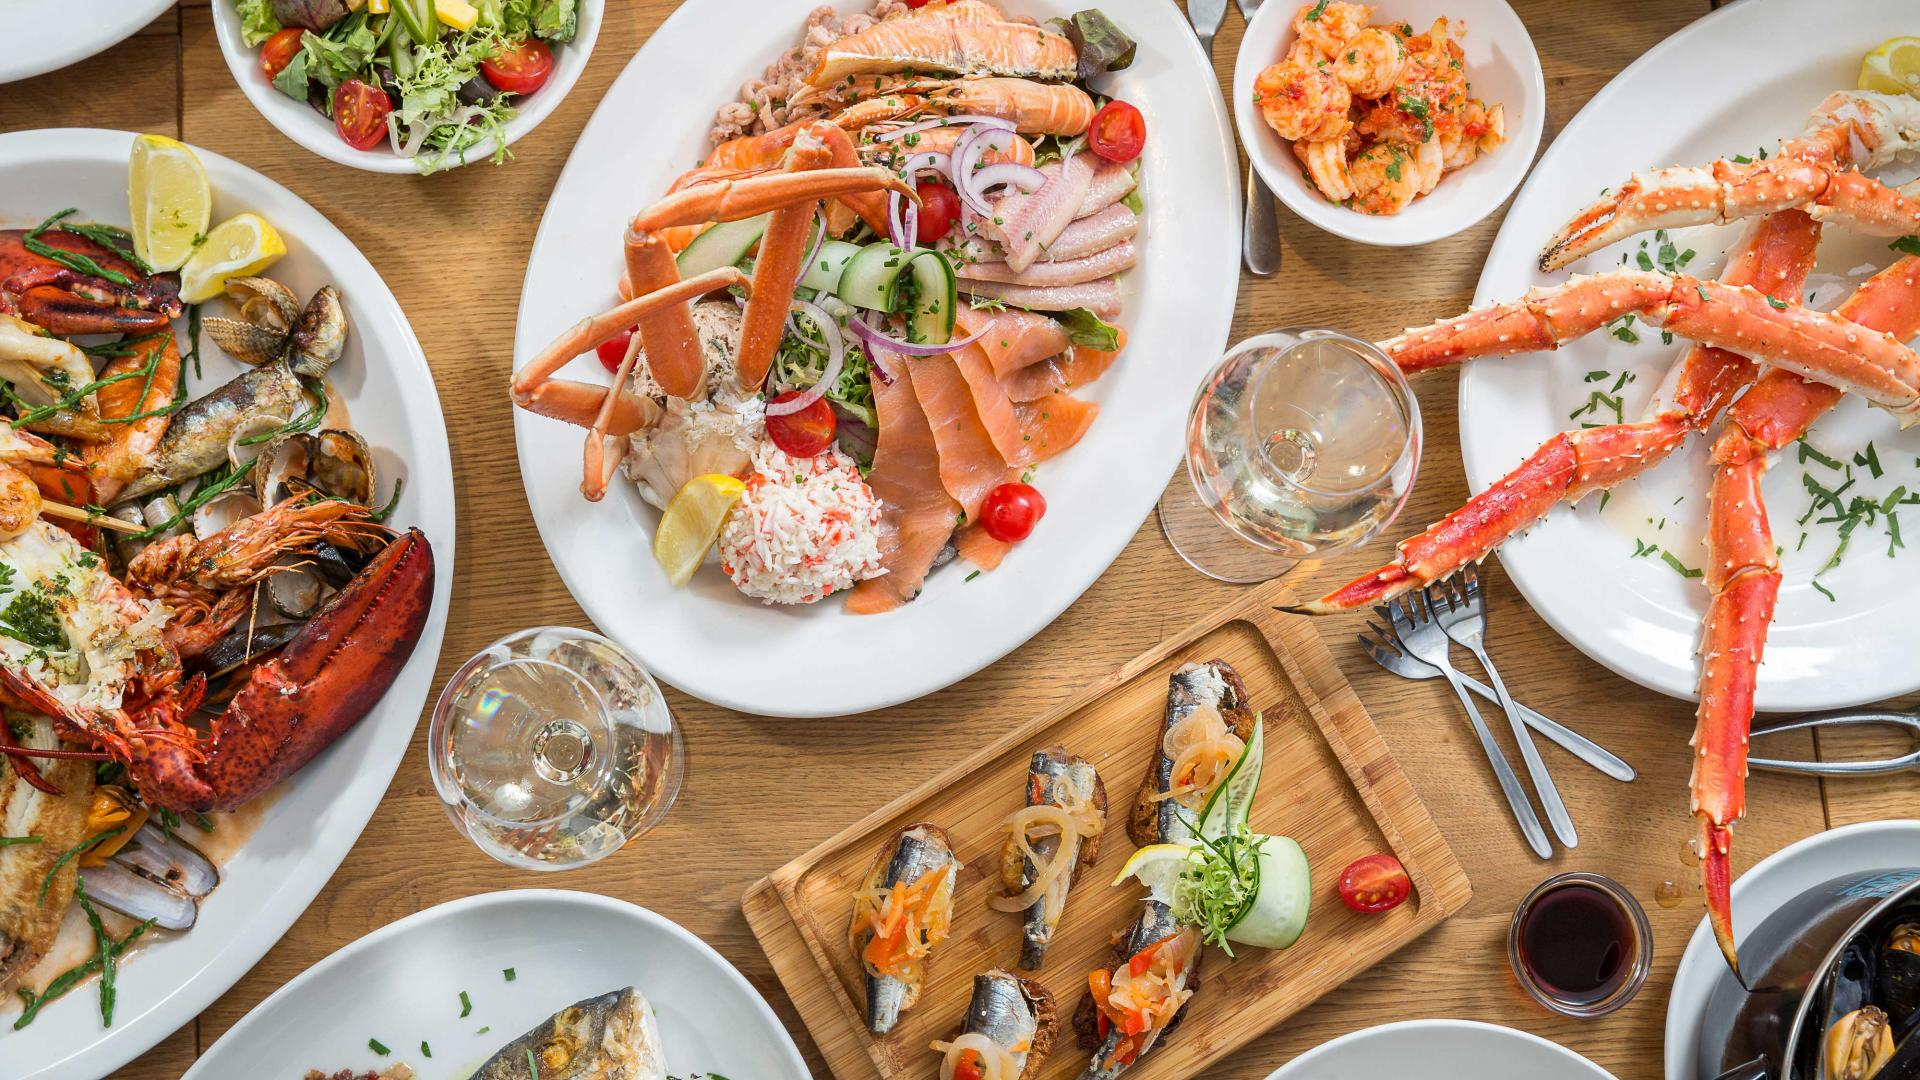 London's best seafood restaurants: The Seafood Bar